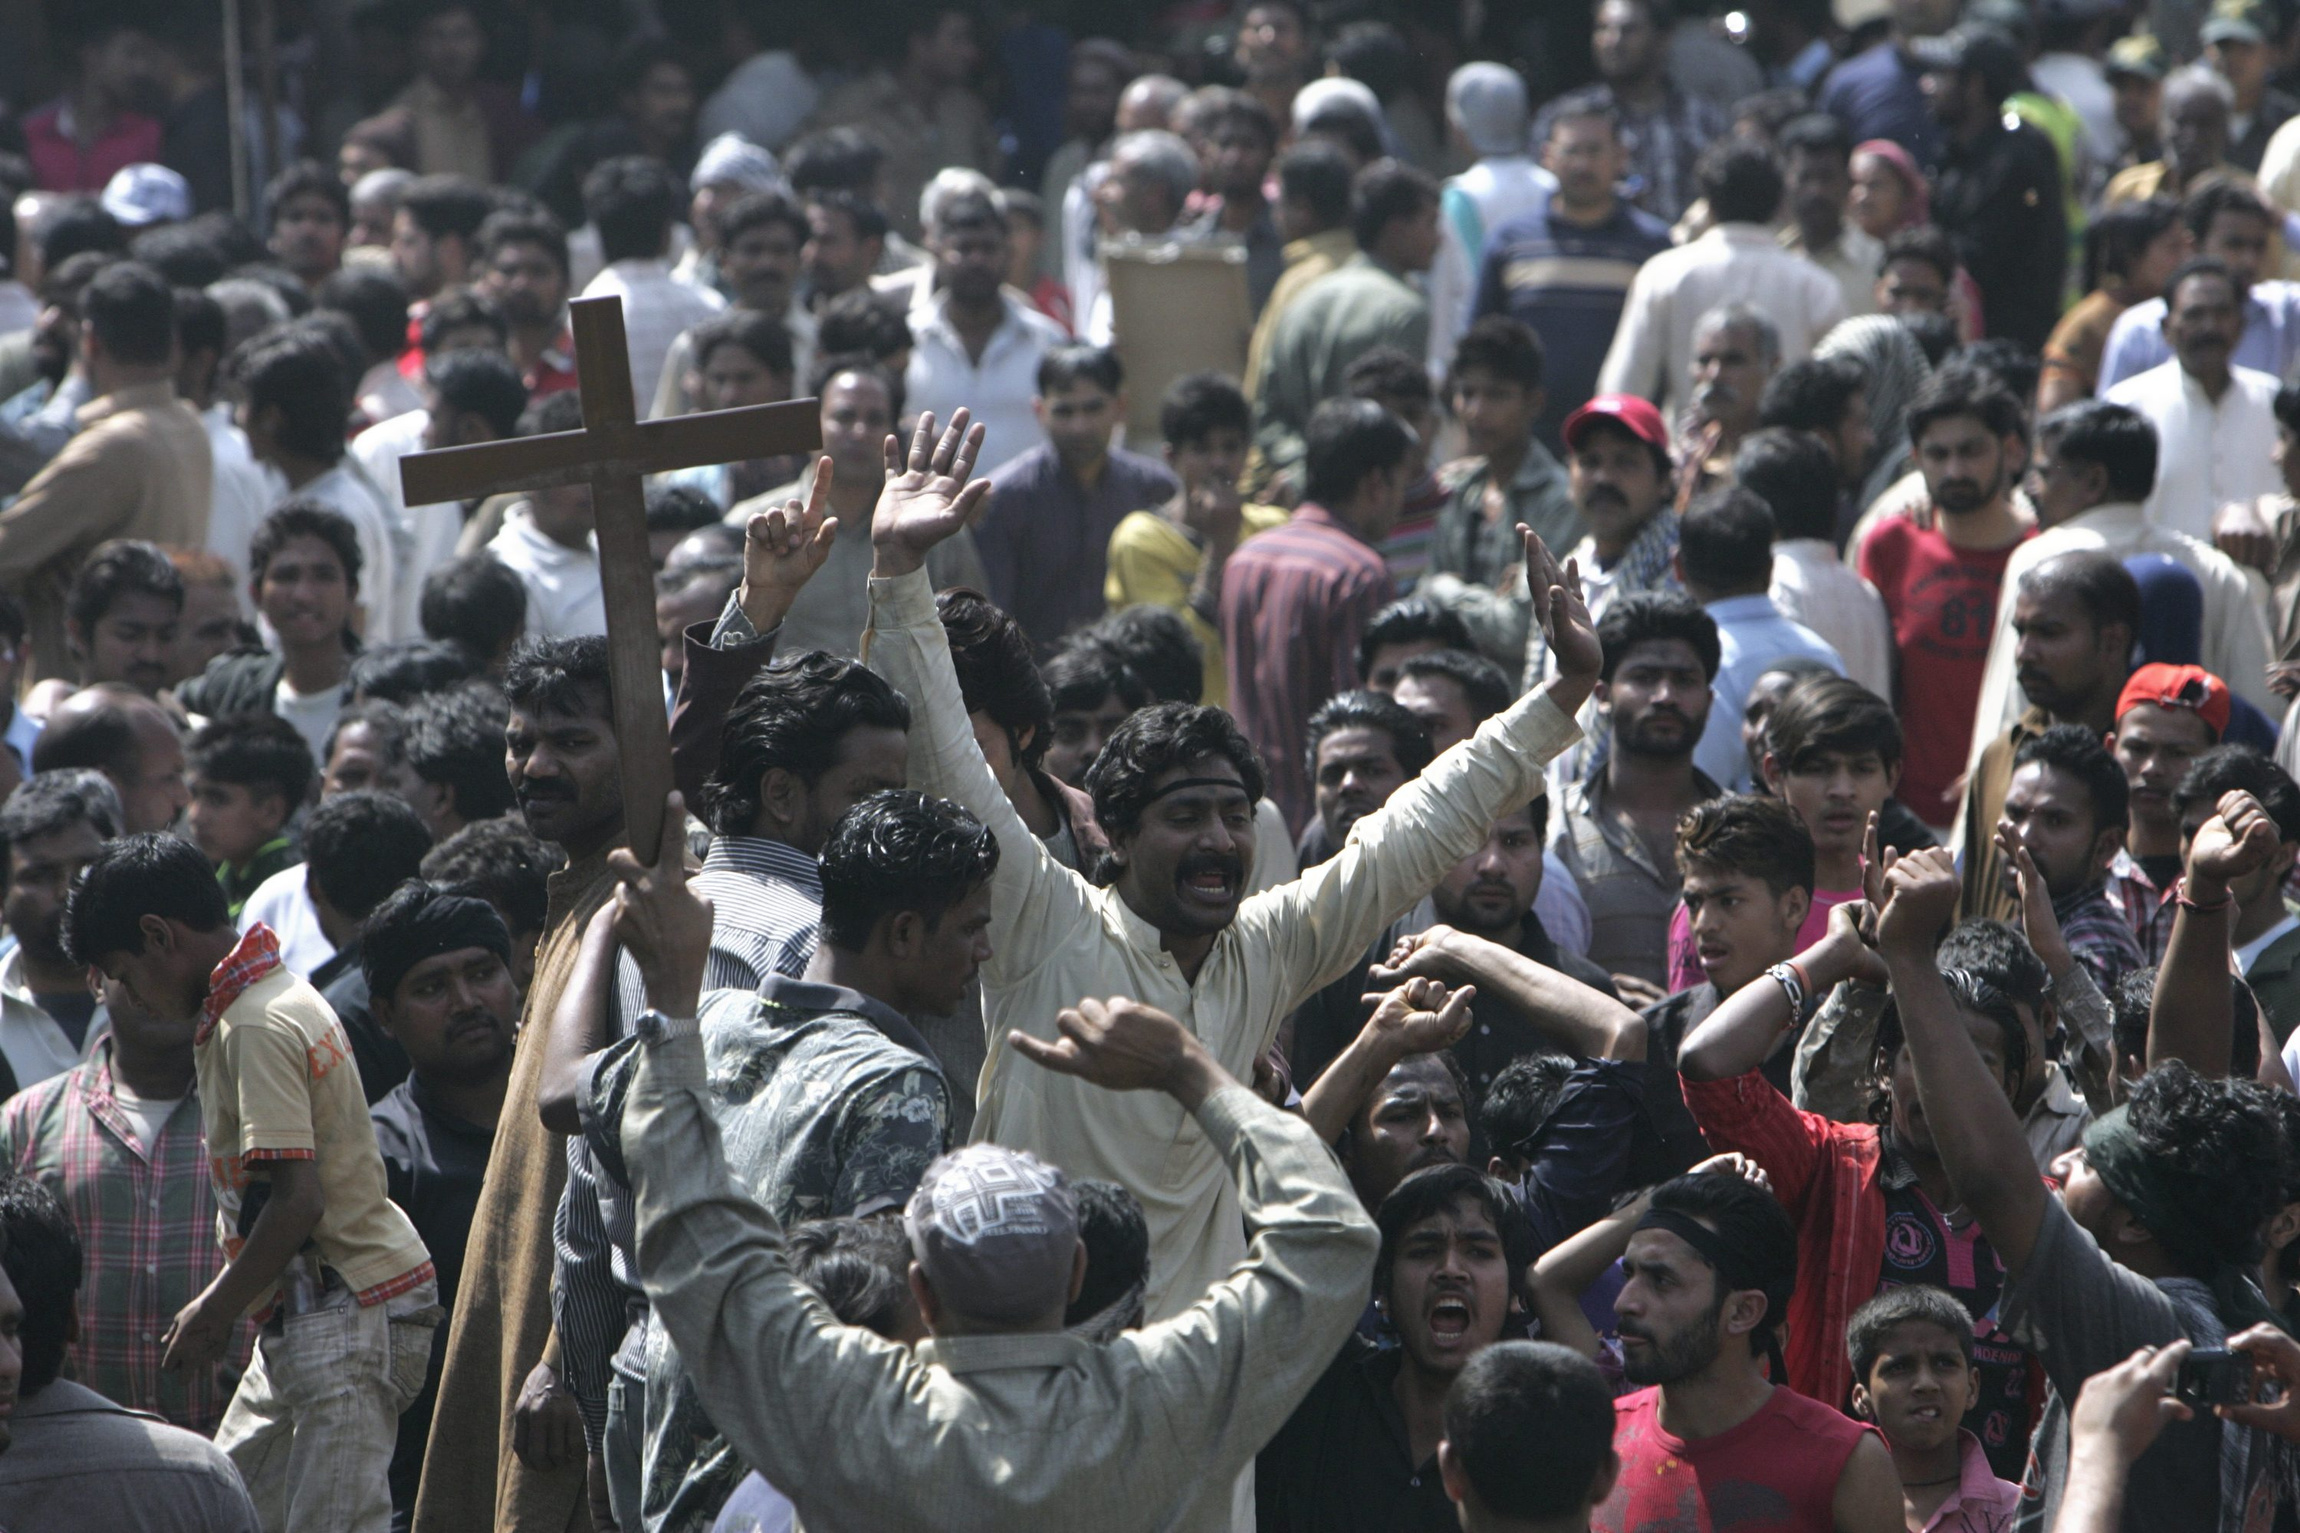 Pakistani Christians protest after attacks in Lahore